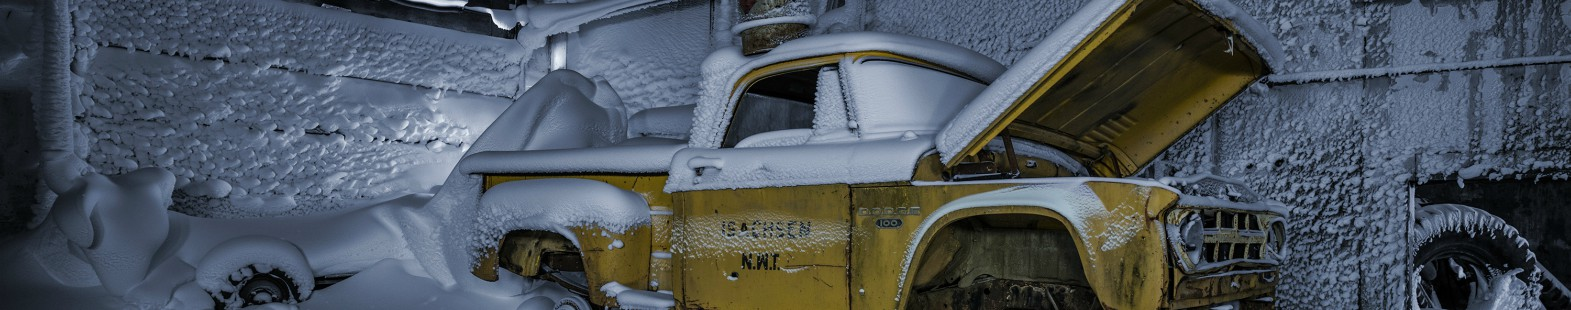 Image from Isachsen by aAron munson shows an old yellow truck, covered in snow, in a frozen garage.